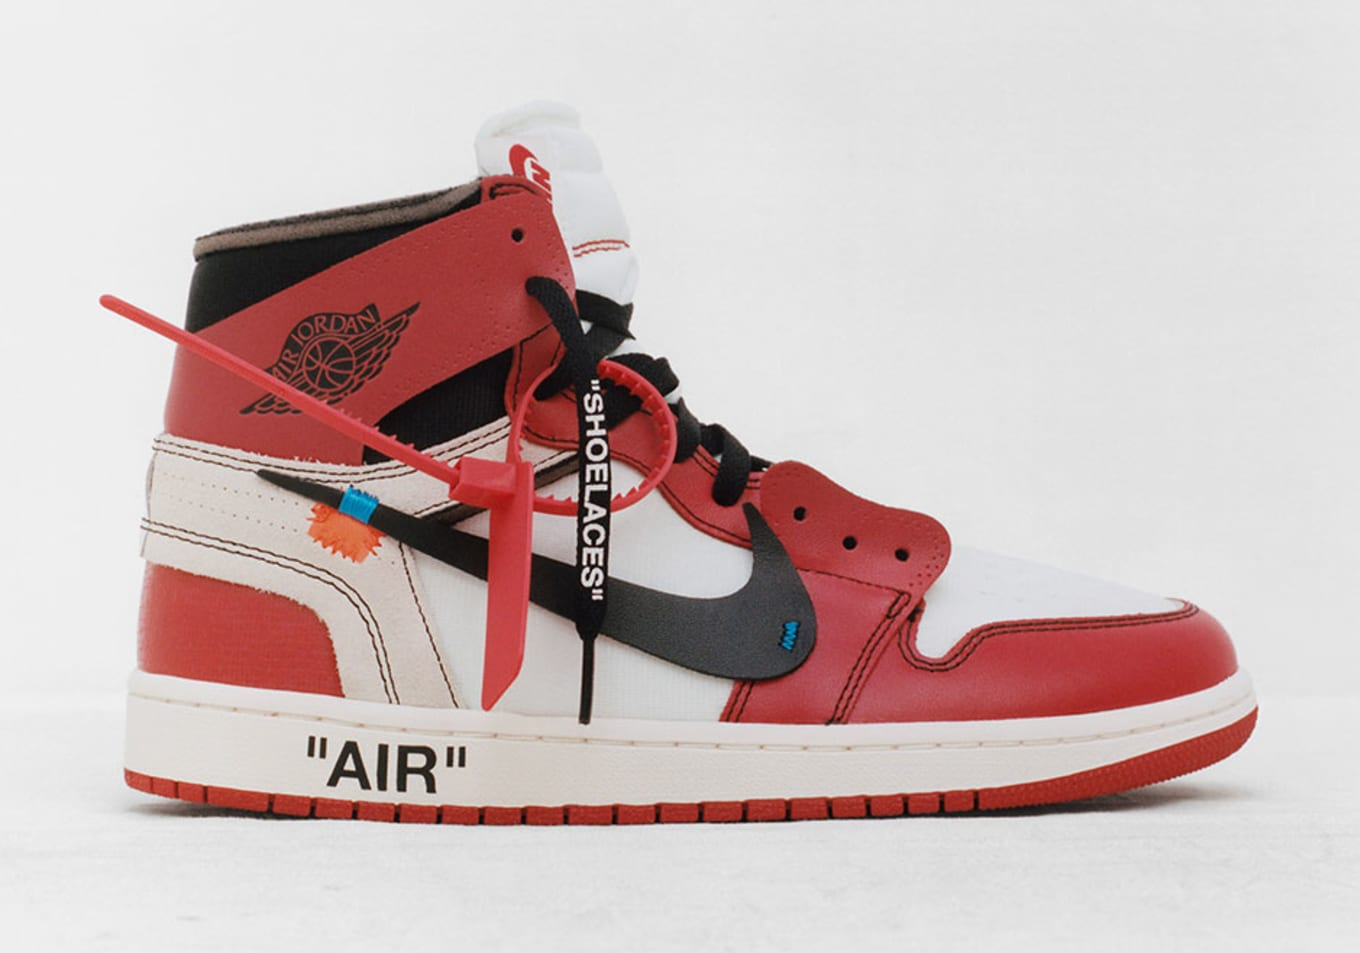 2273089e624cba More Off-White x Air Jordan 1s Releasing in 2018. Rumor has it there s a  blue colorway coming.